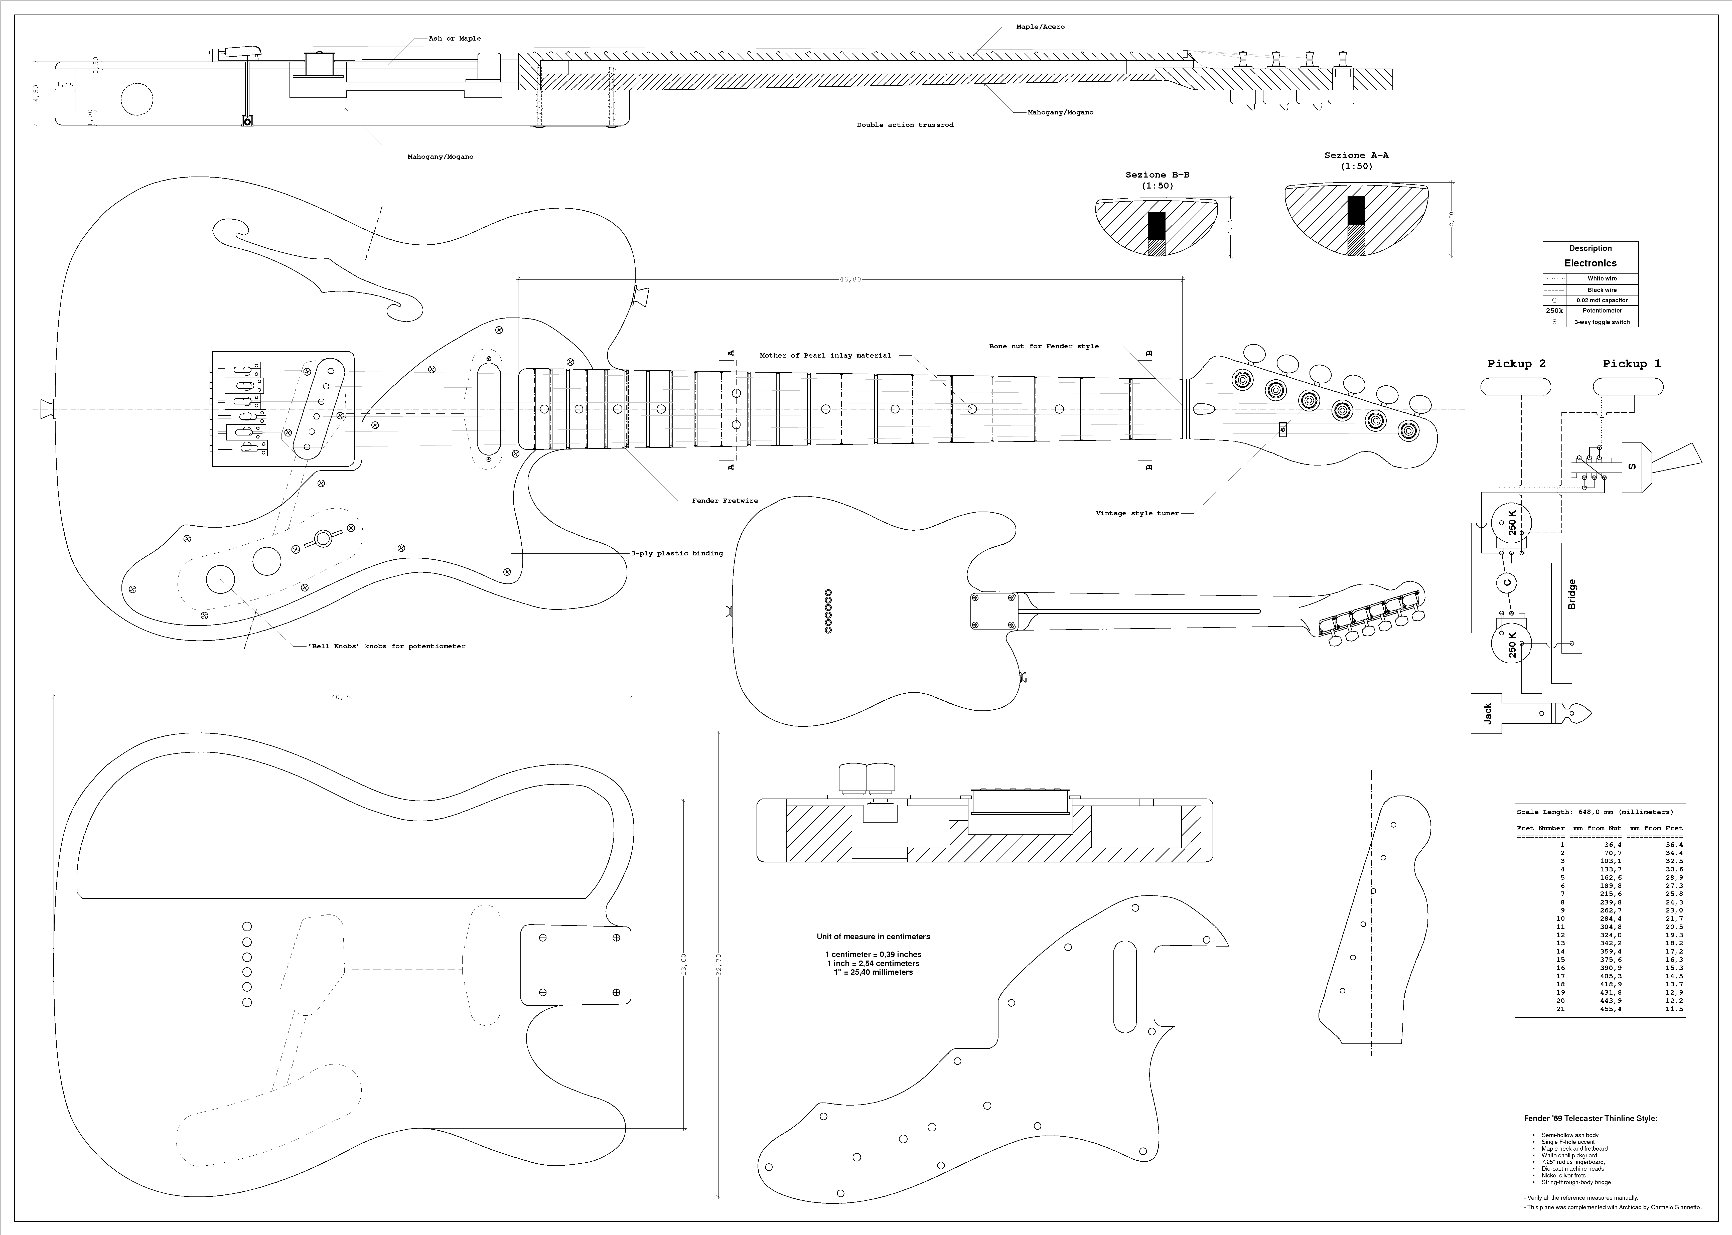 Cheap Full Scale Plans for the Fender Telecaster 1969 Thinline Electric Guitar Black Friday & Cyber Monday 2019